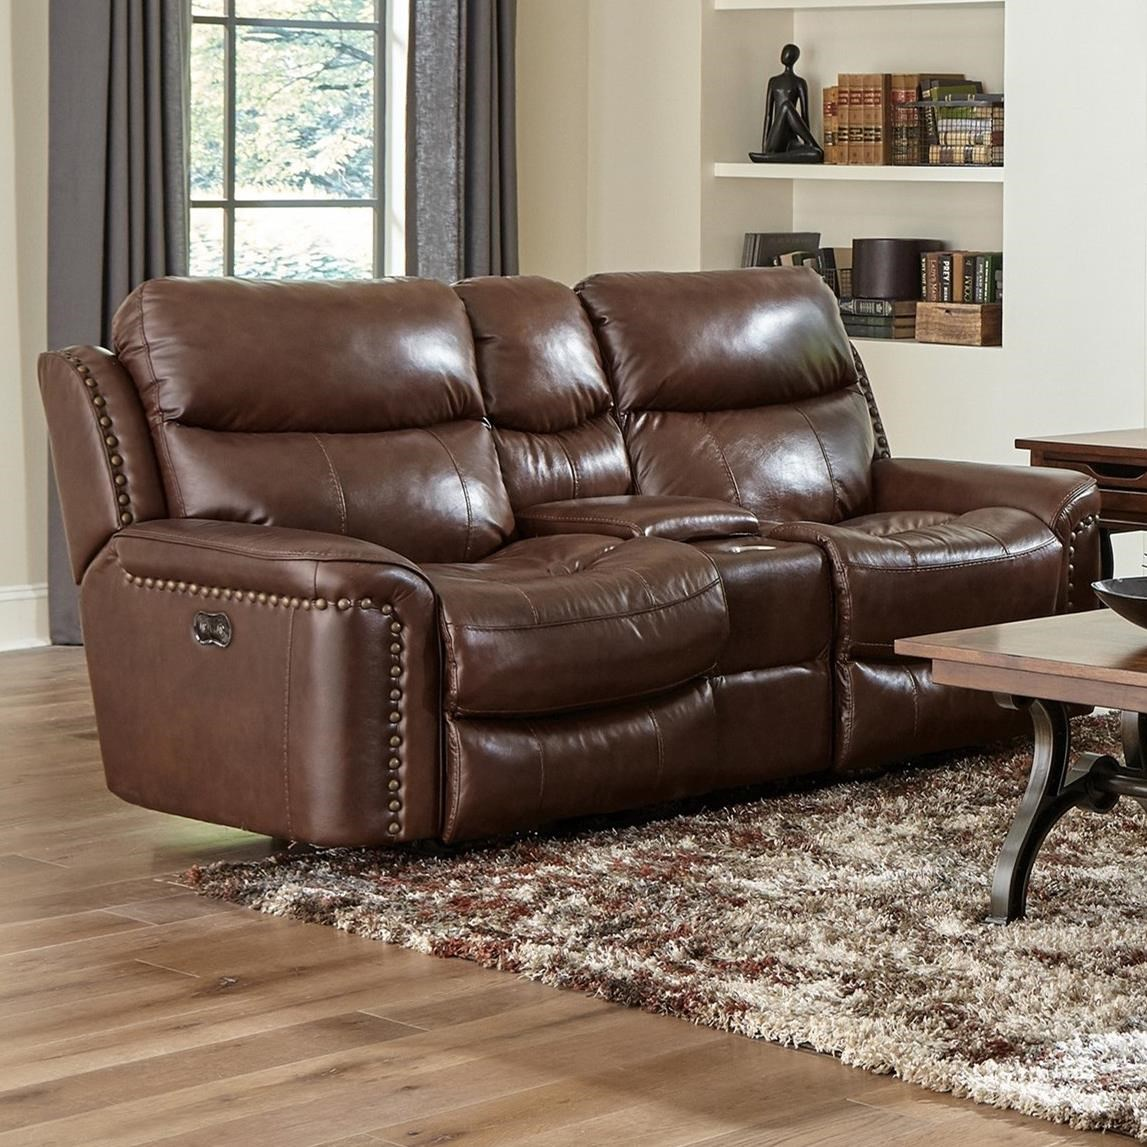 Power Reclining Console Loveseat w/ Storage